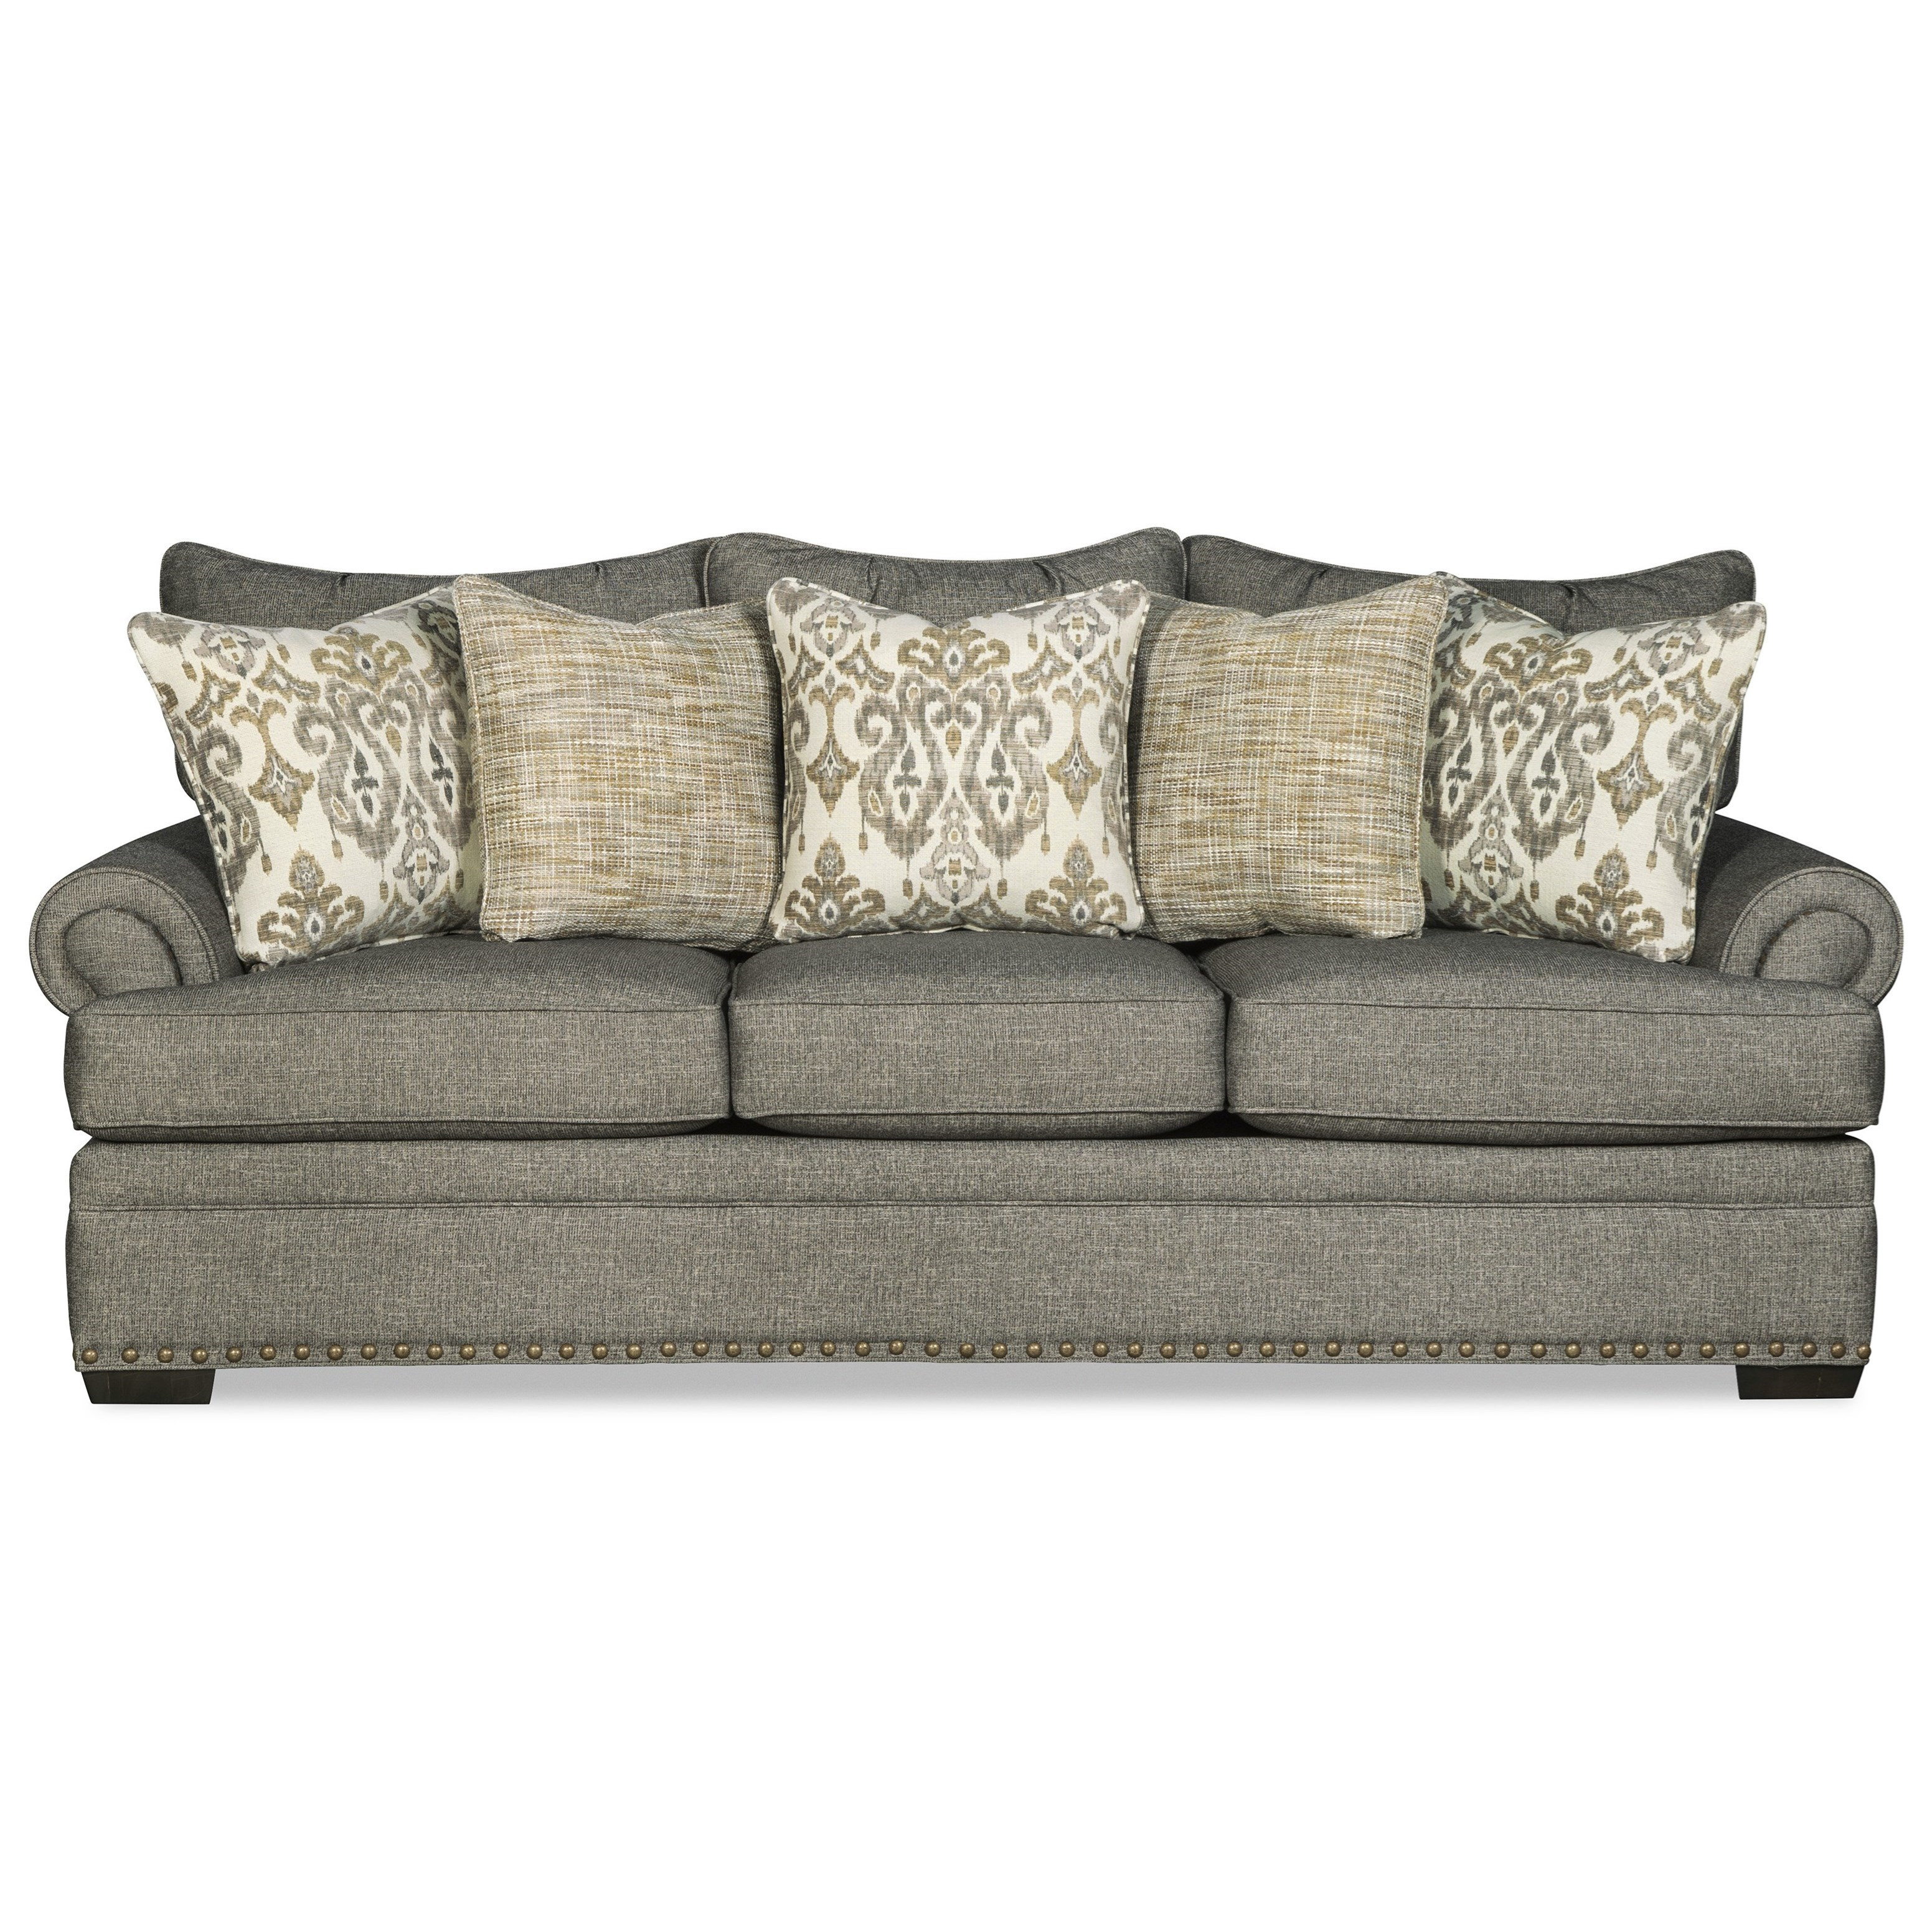 701650 Sofa by Hickory Craft at Godby Home Furnishings